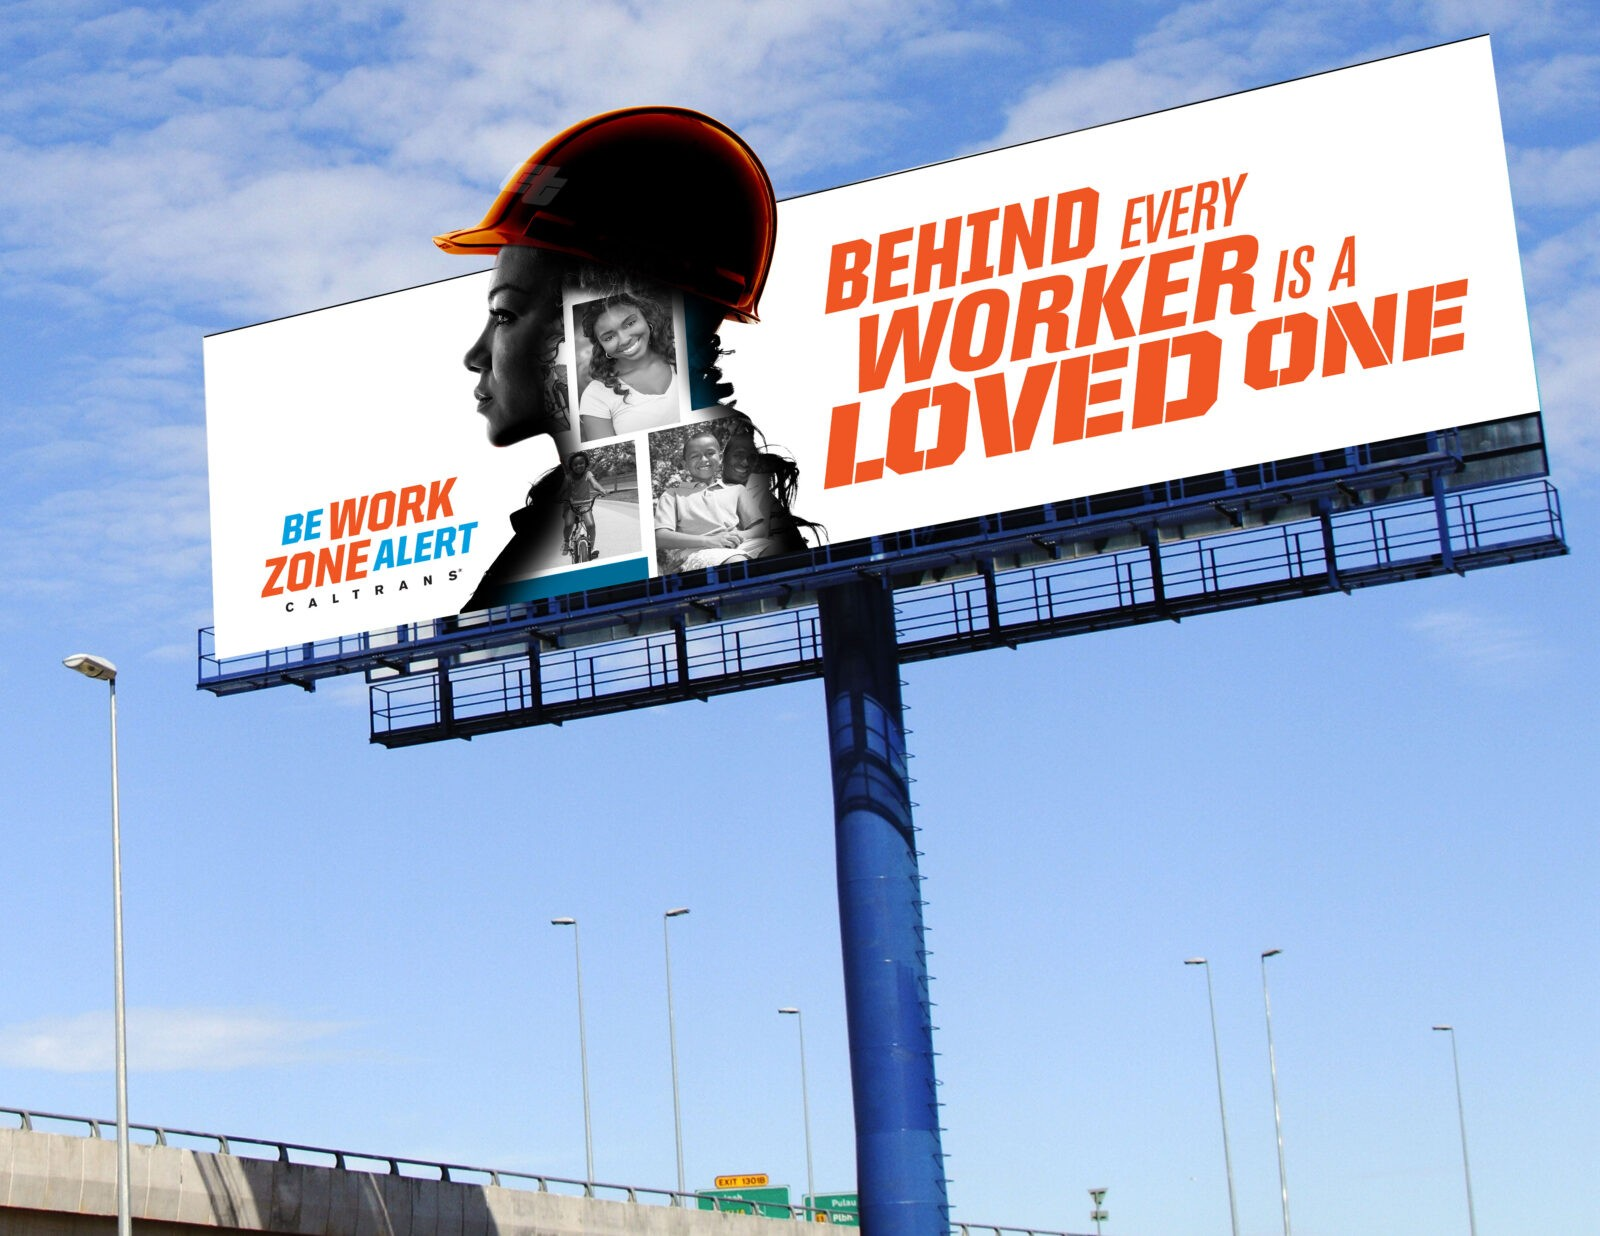 CalTrans Behind Every Worker Campaign: Outdoor Board